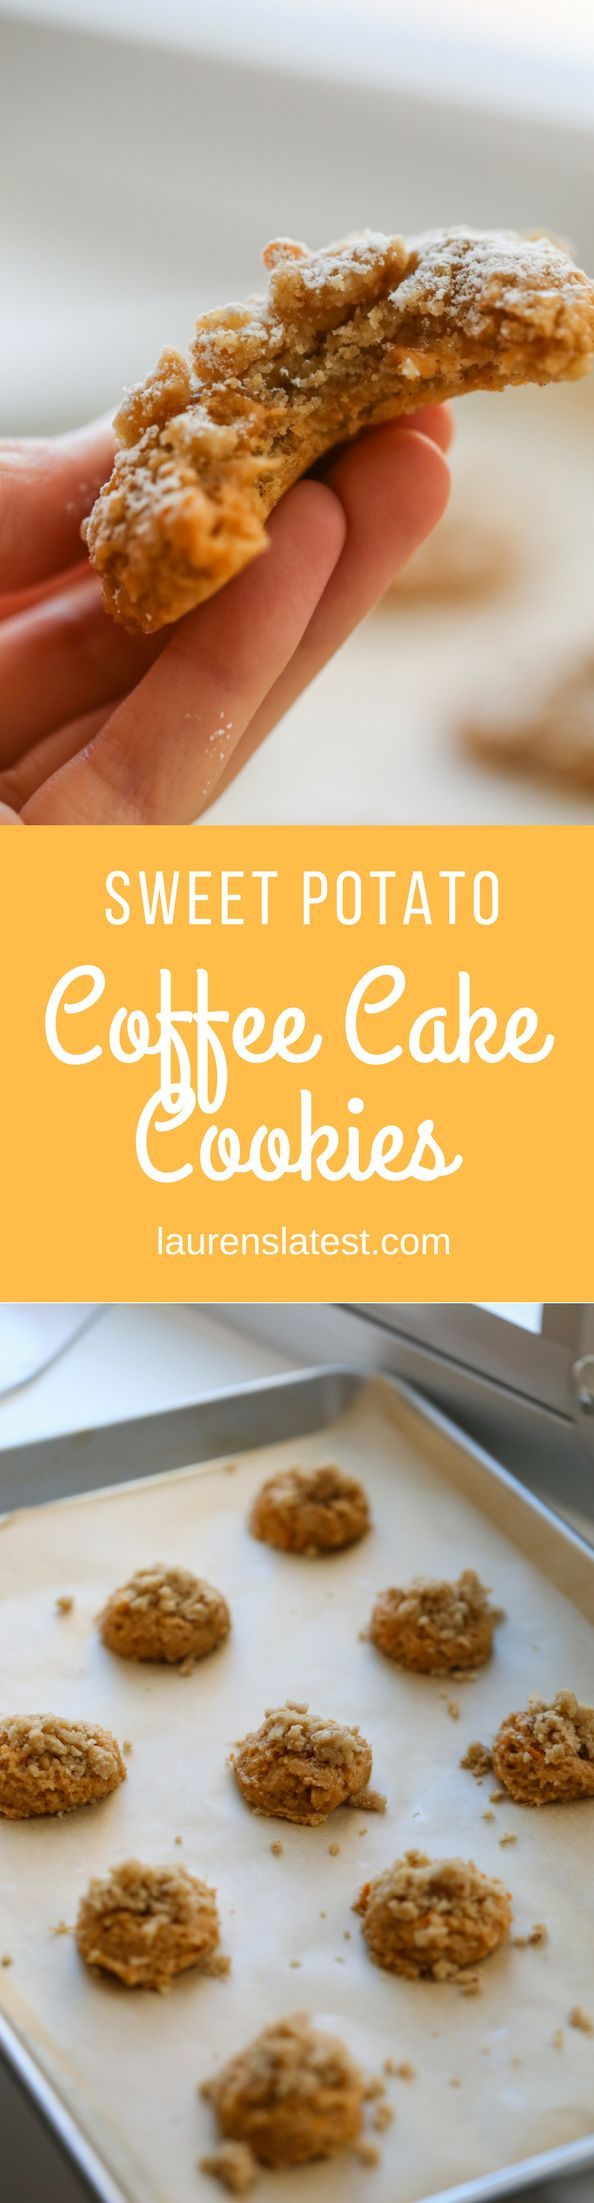 Sweet Potato Coffee Cake Cookies! Soft and lightly spiced cookies make with mashed sweet potato, topped with homemade streusel and powdered sugar. Perfect dessert for Fall!